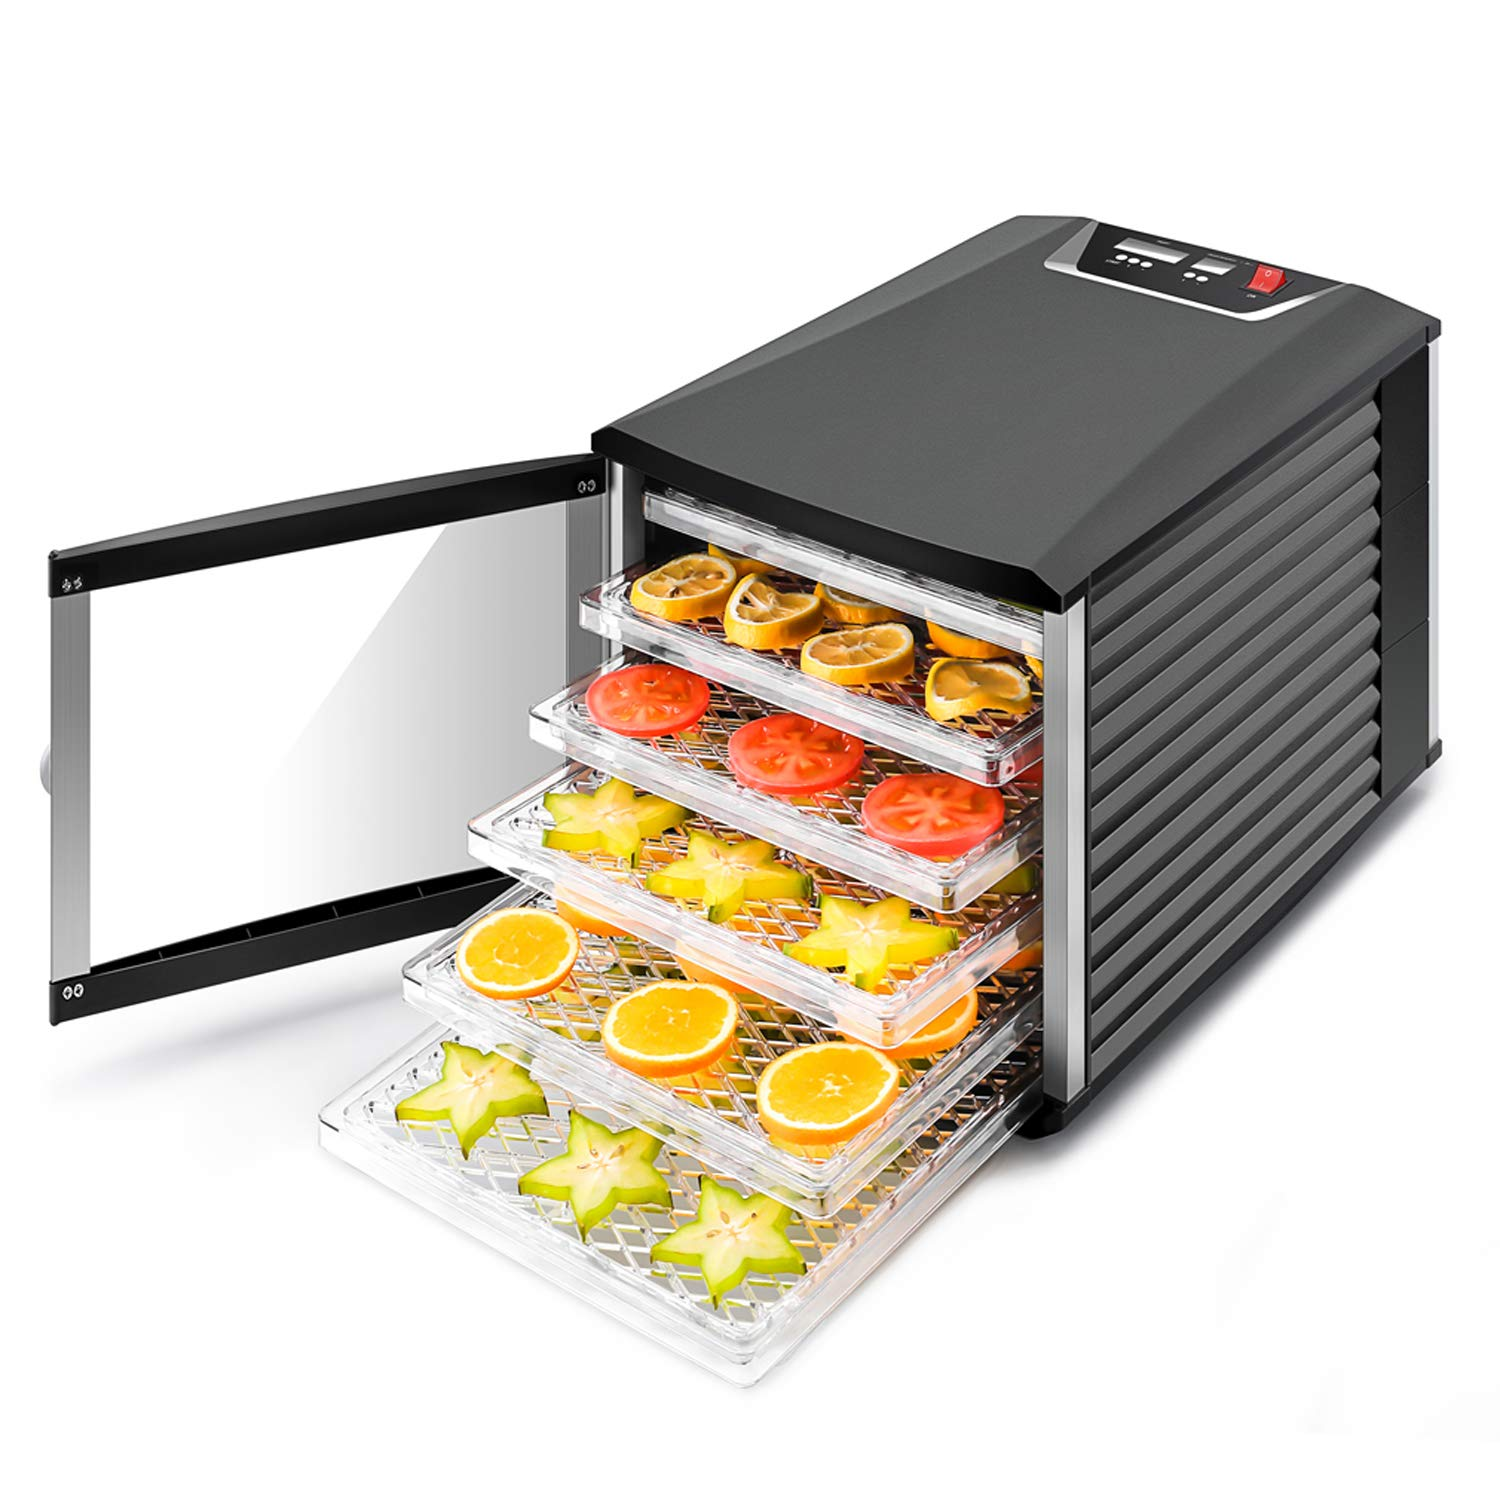 JAYETEC Professional Food Dehydrator, 6-Trays with Digital Thermostat and Timer, fruit, vegetables, meat, flowers, herbs, beef dryer,transparent front door & black,including 2 pcs non-stick sheets by JAYETEC